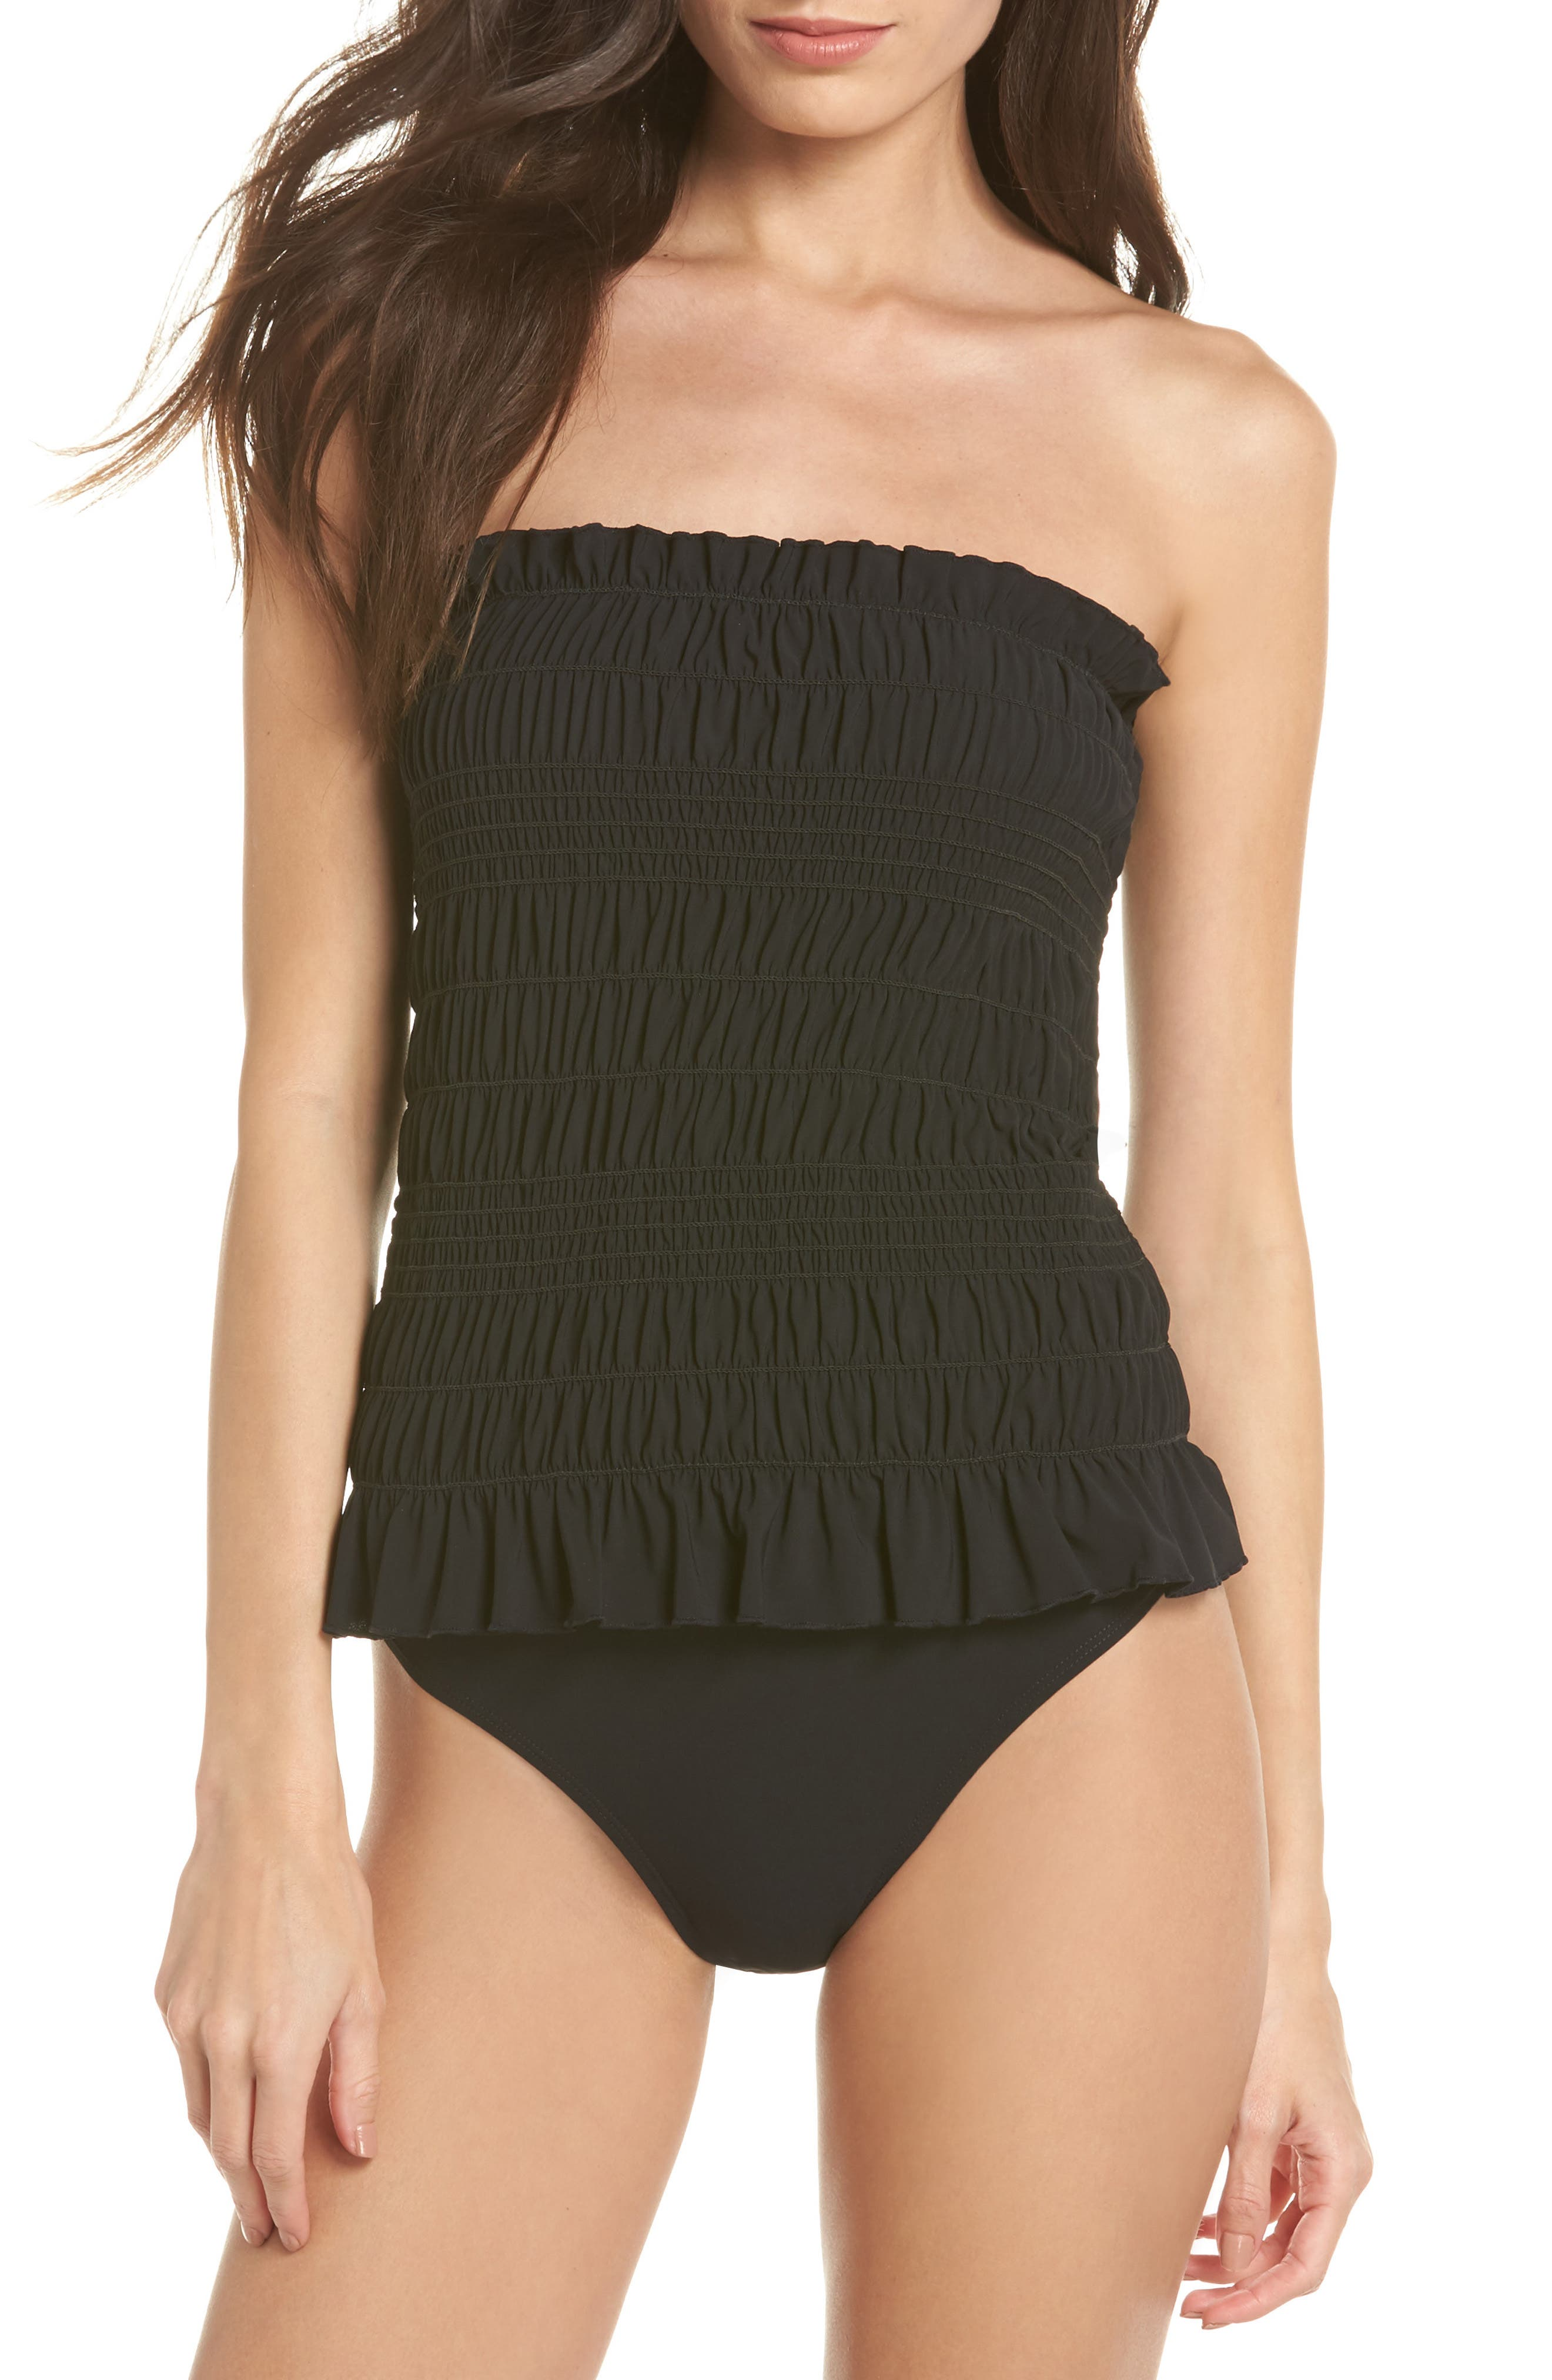 Costa Smocked One-Piece Swimsuit,                         Main,                         color, Black / Black